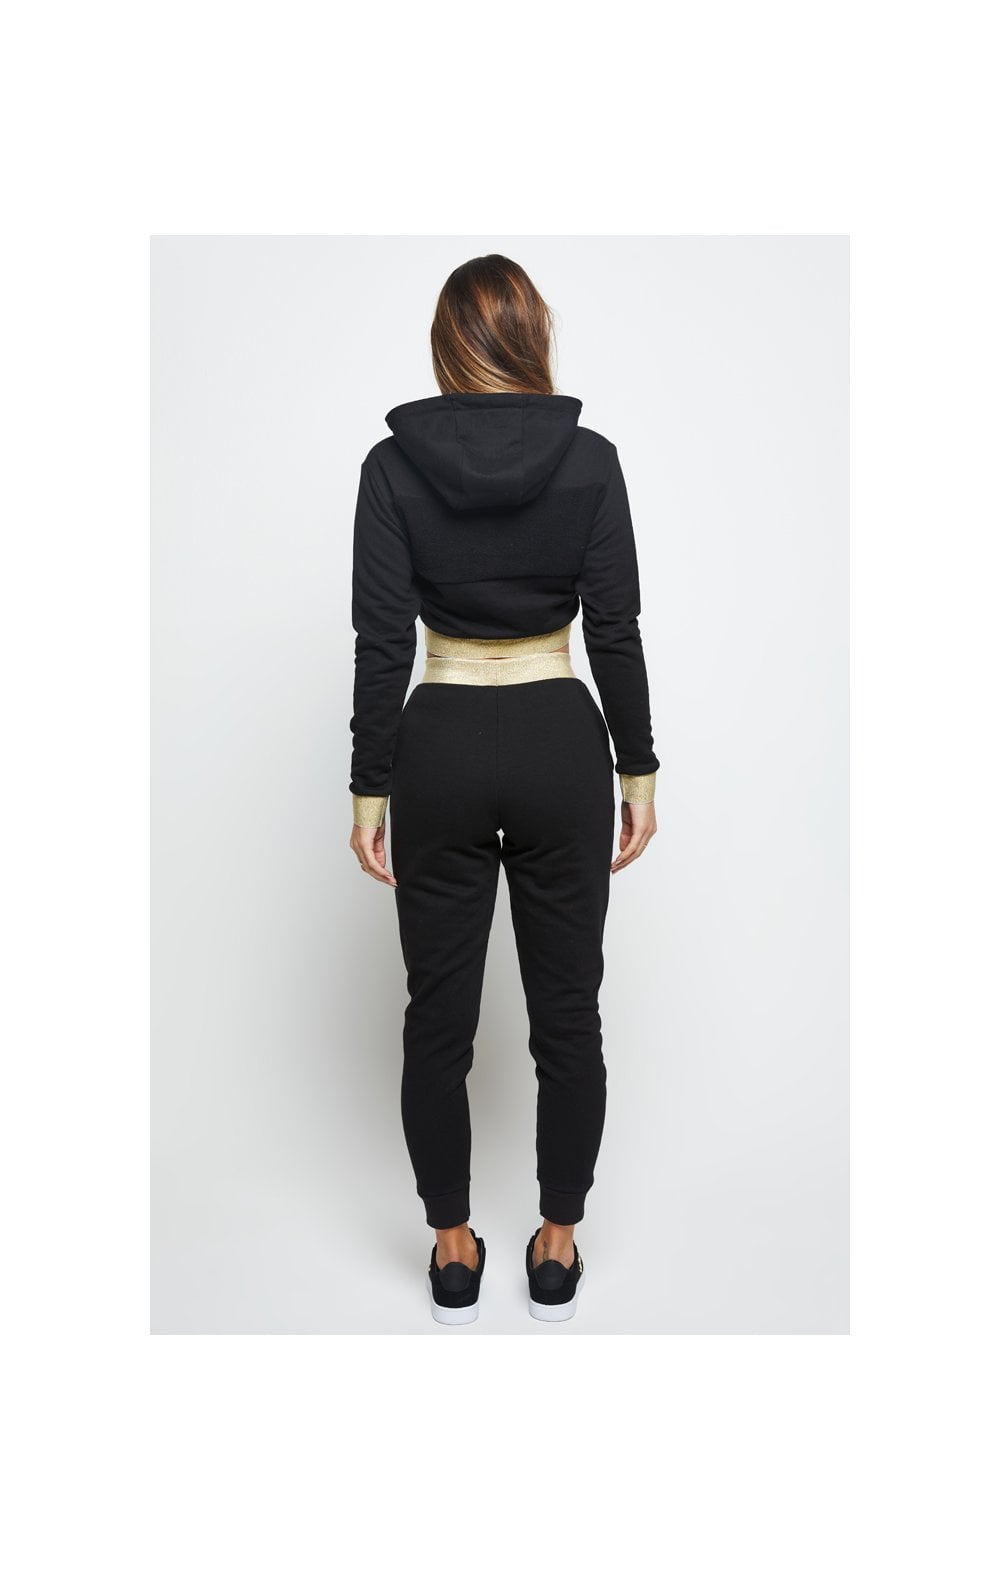 SikSilk Taped Jogger - Black (5)